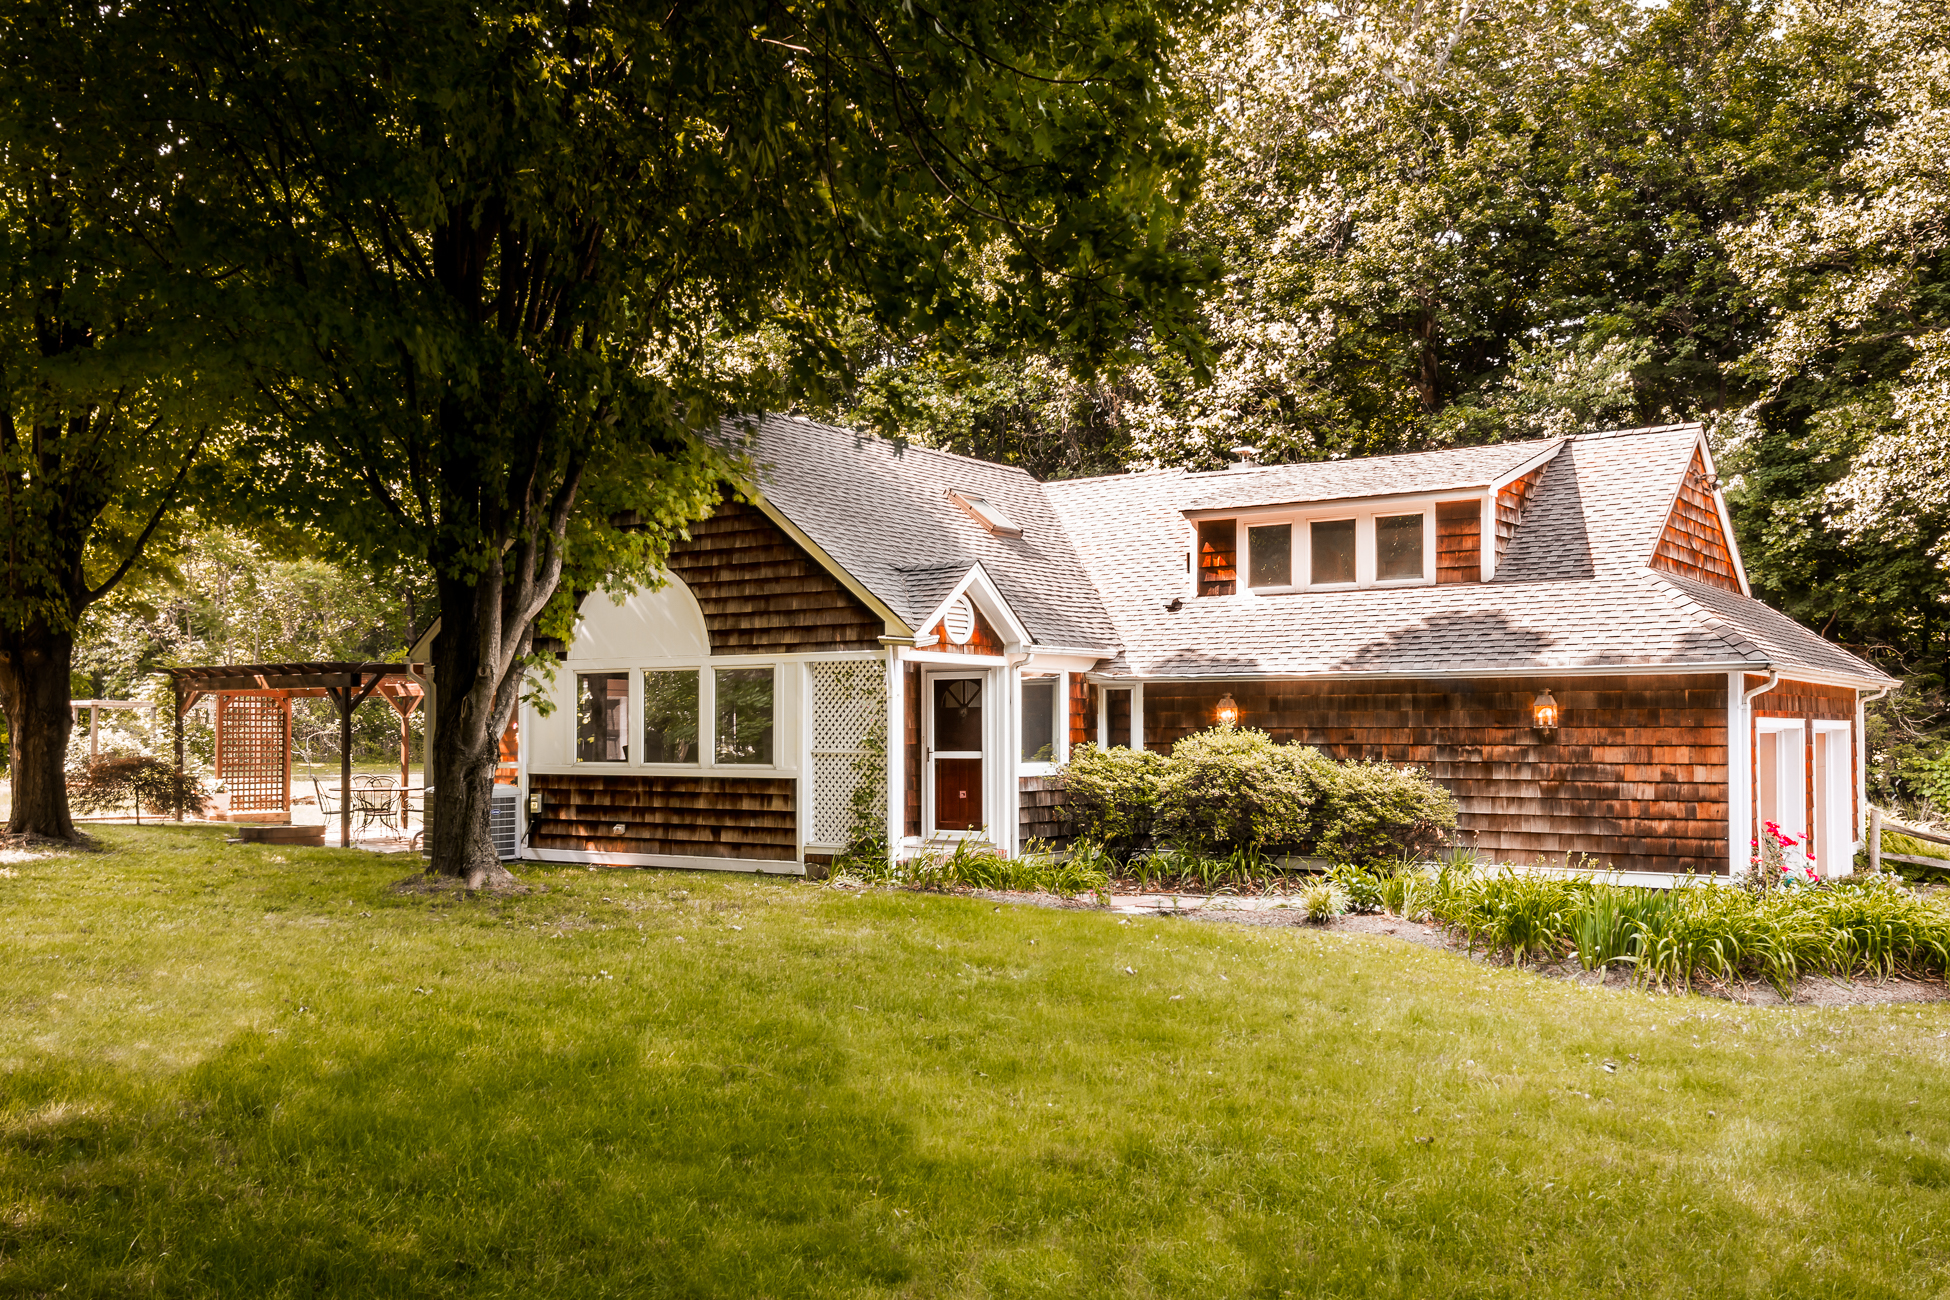 sales property at Peaceful Home and Barn Weave a Magical Spell - Franklin Township